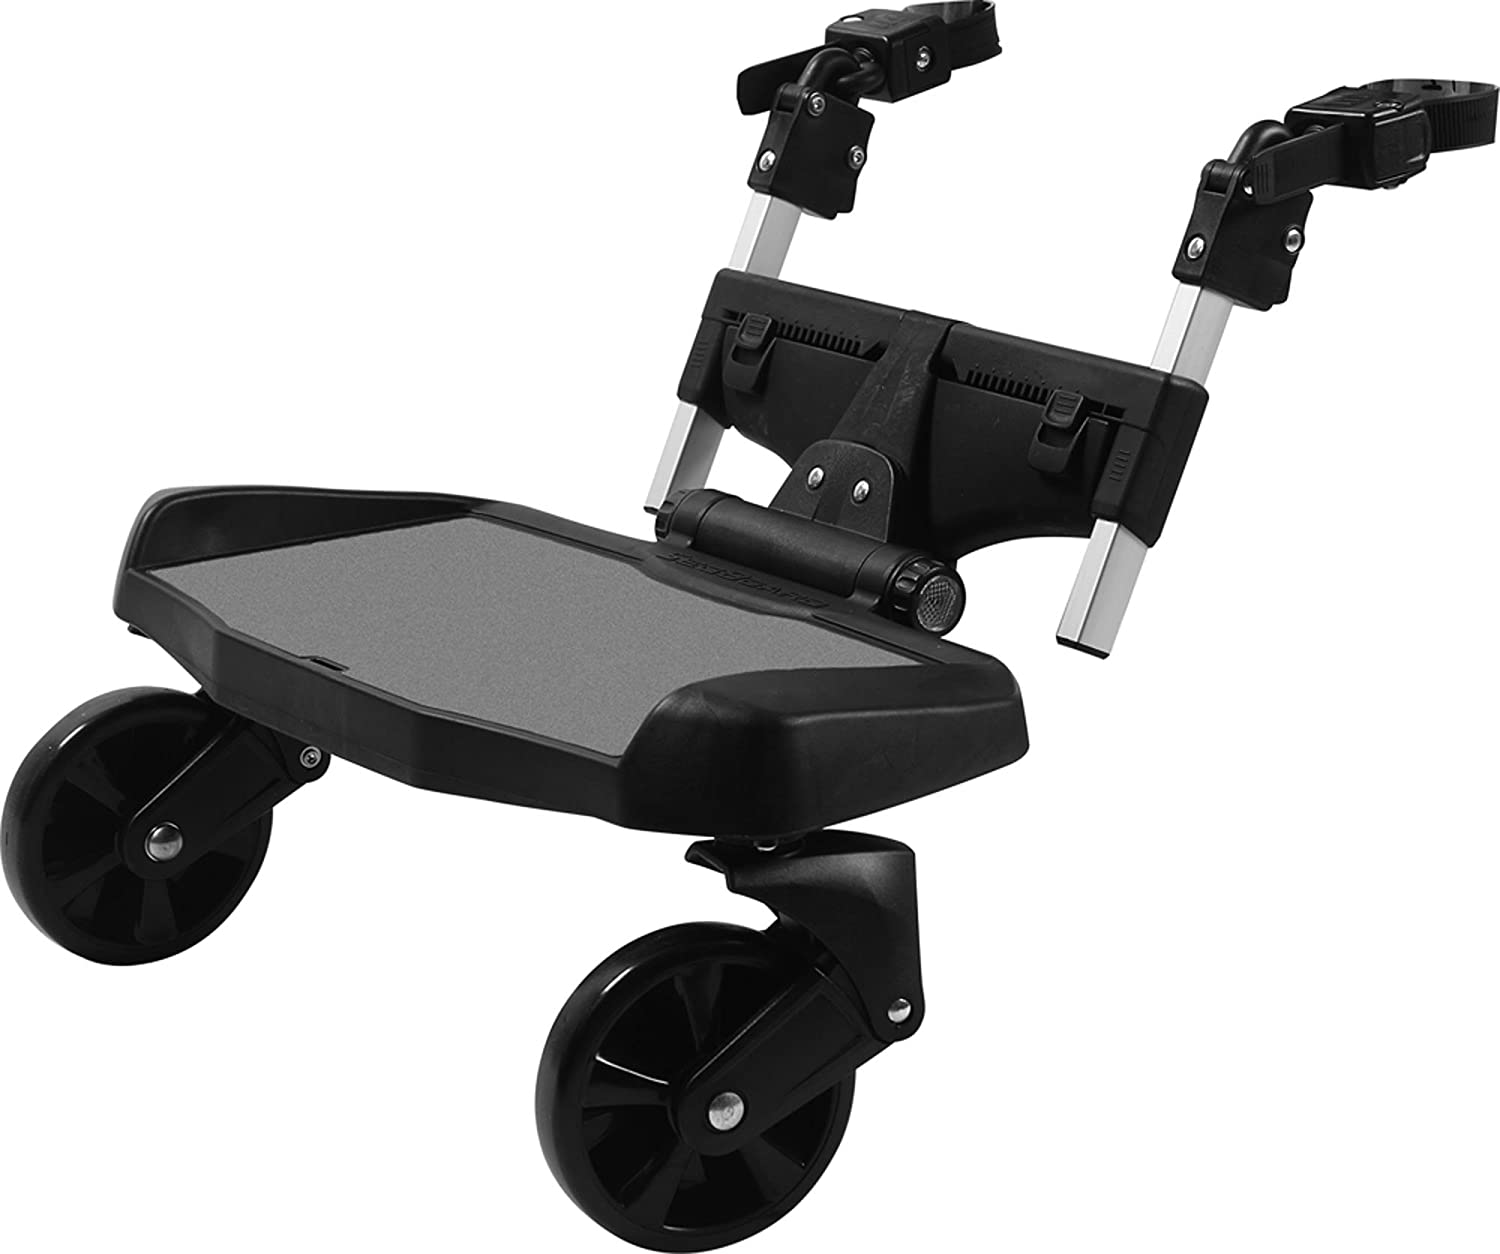 guzzie+Guss Hitch Ride-On Stroller Board, Black GG017